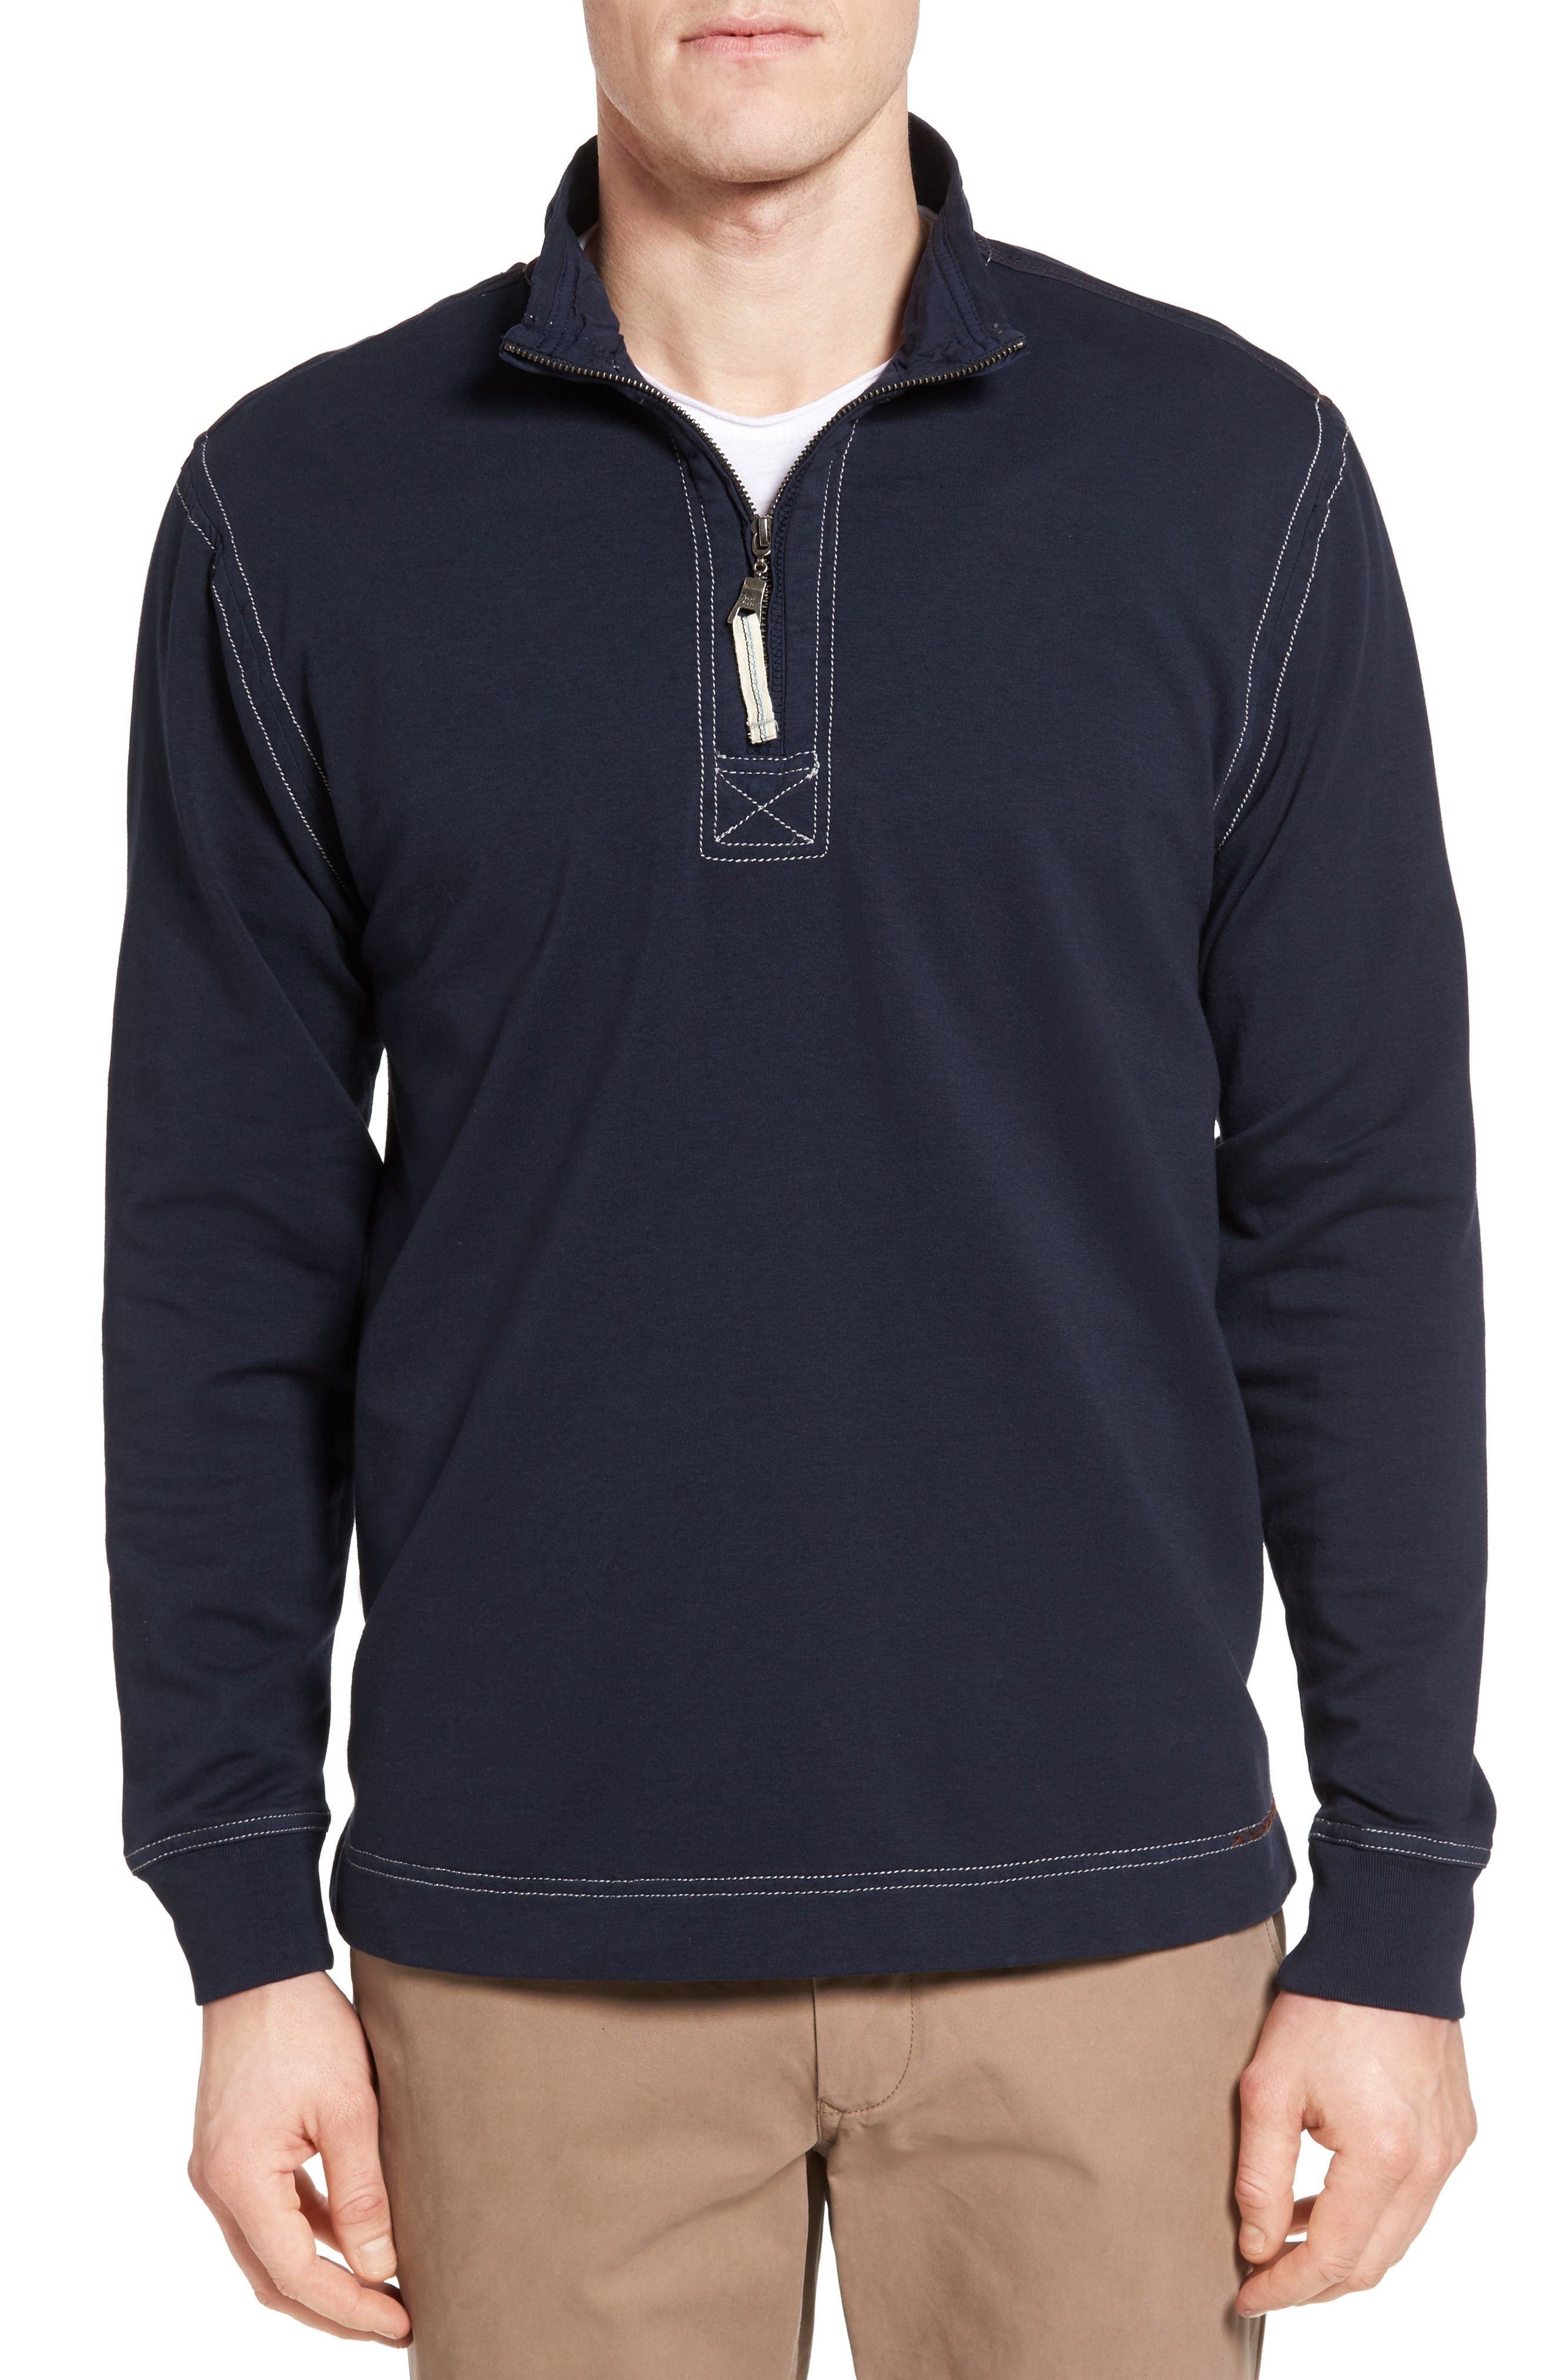 Alternate Image 1 Selected - True Grit Half Zip Pullover